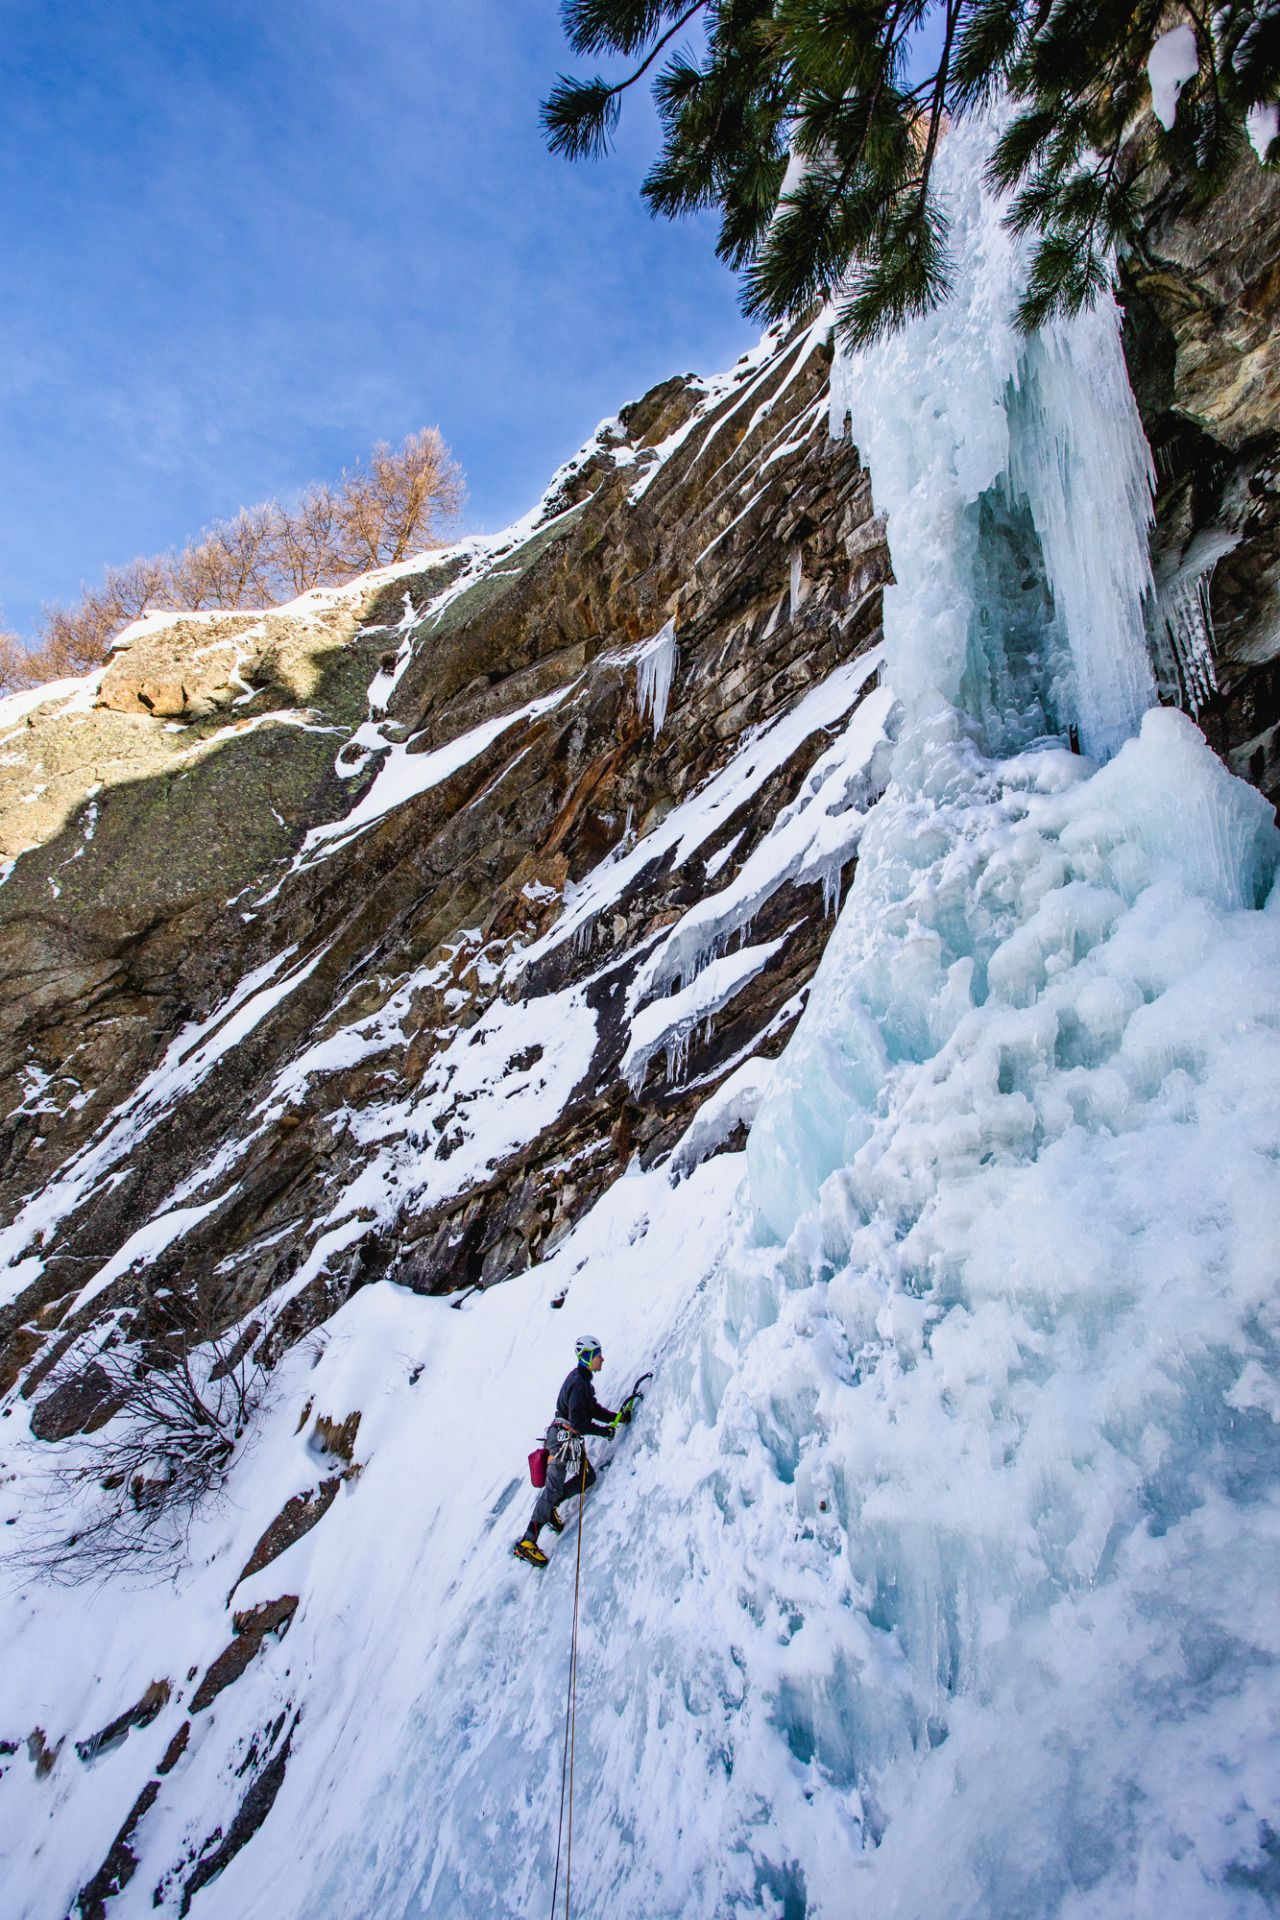 This Is Crampon Point Photo Outdoors Adventure Ice Climbing Places To Go [ 1920 x 1280 Pixel ]